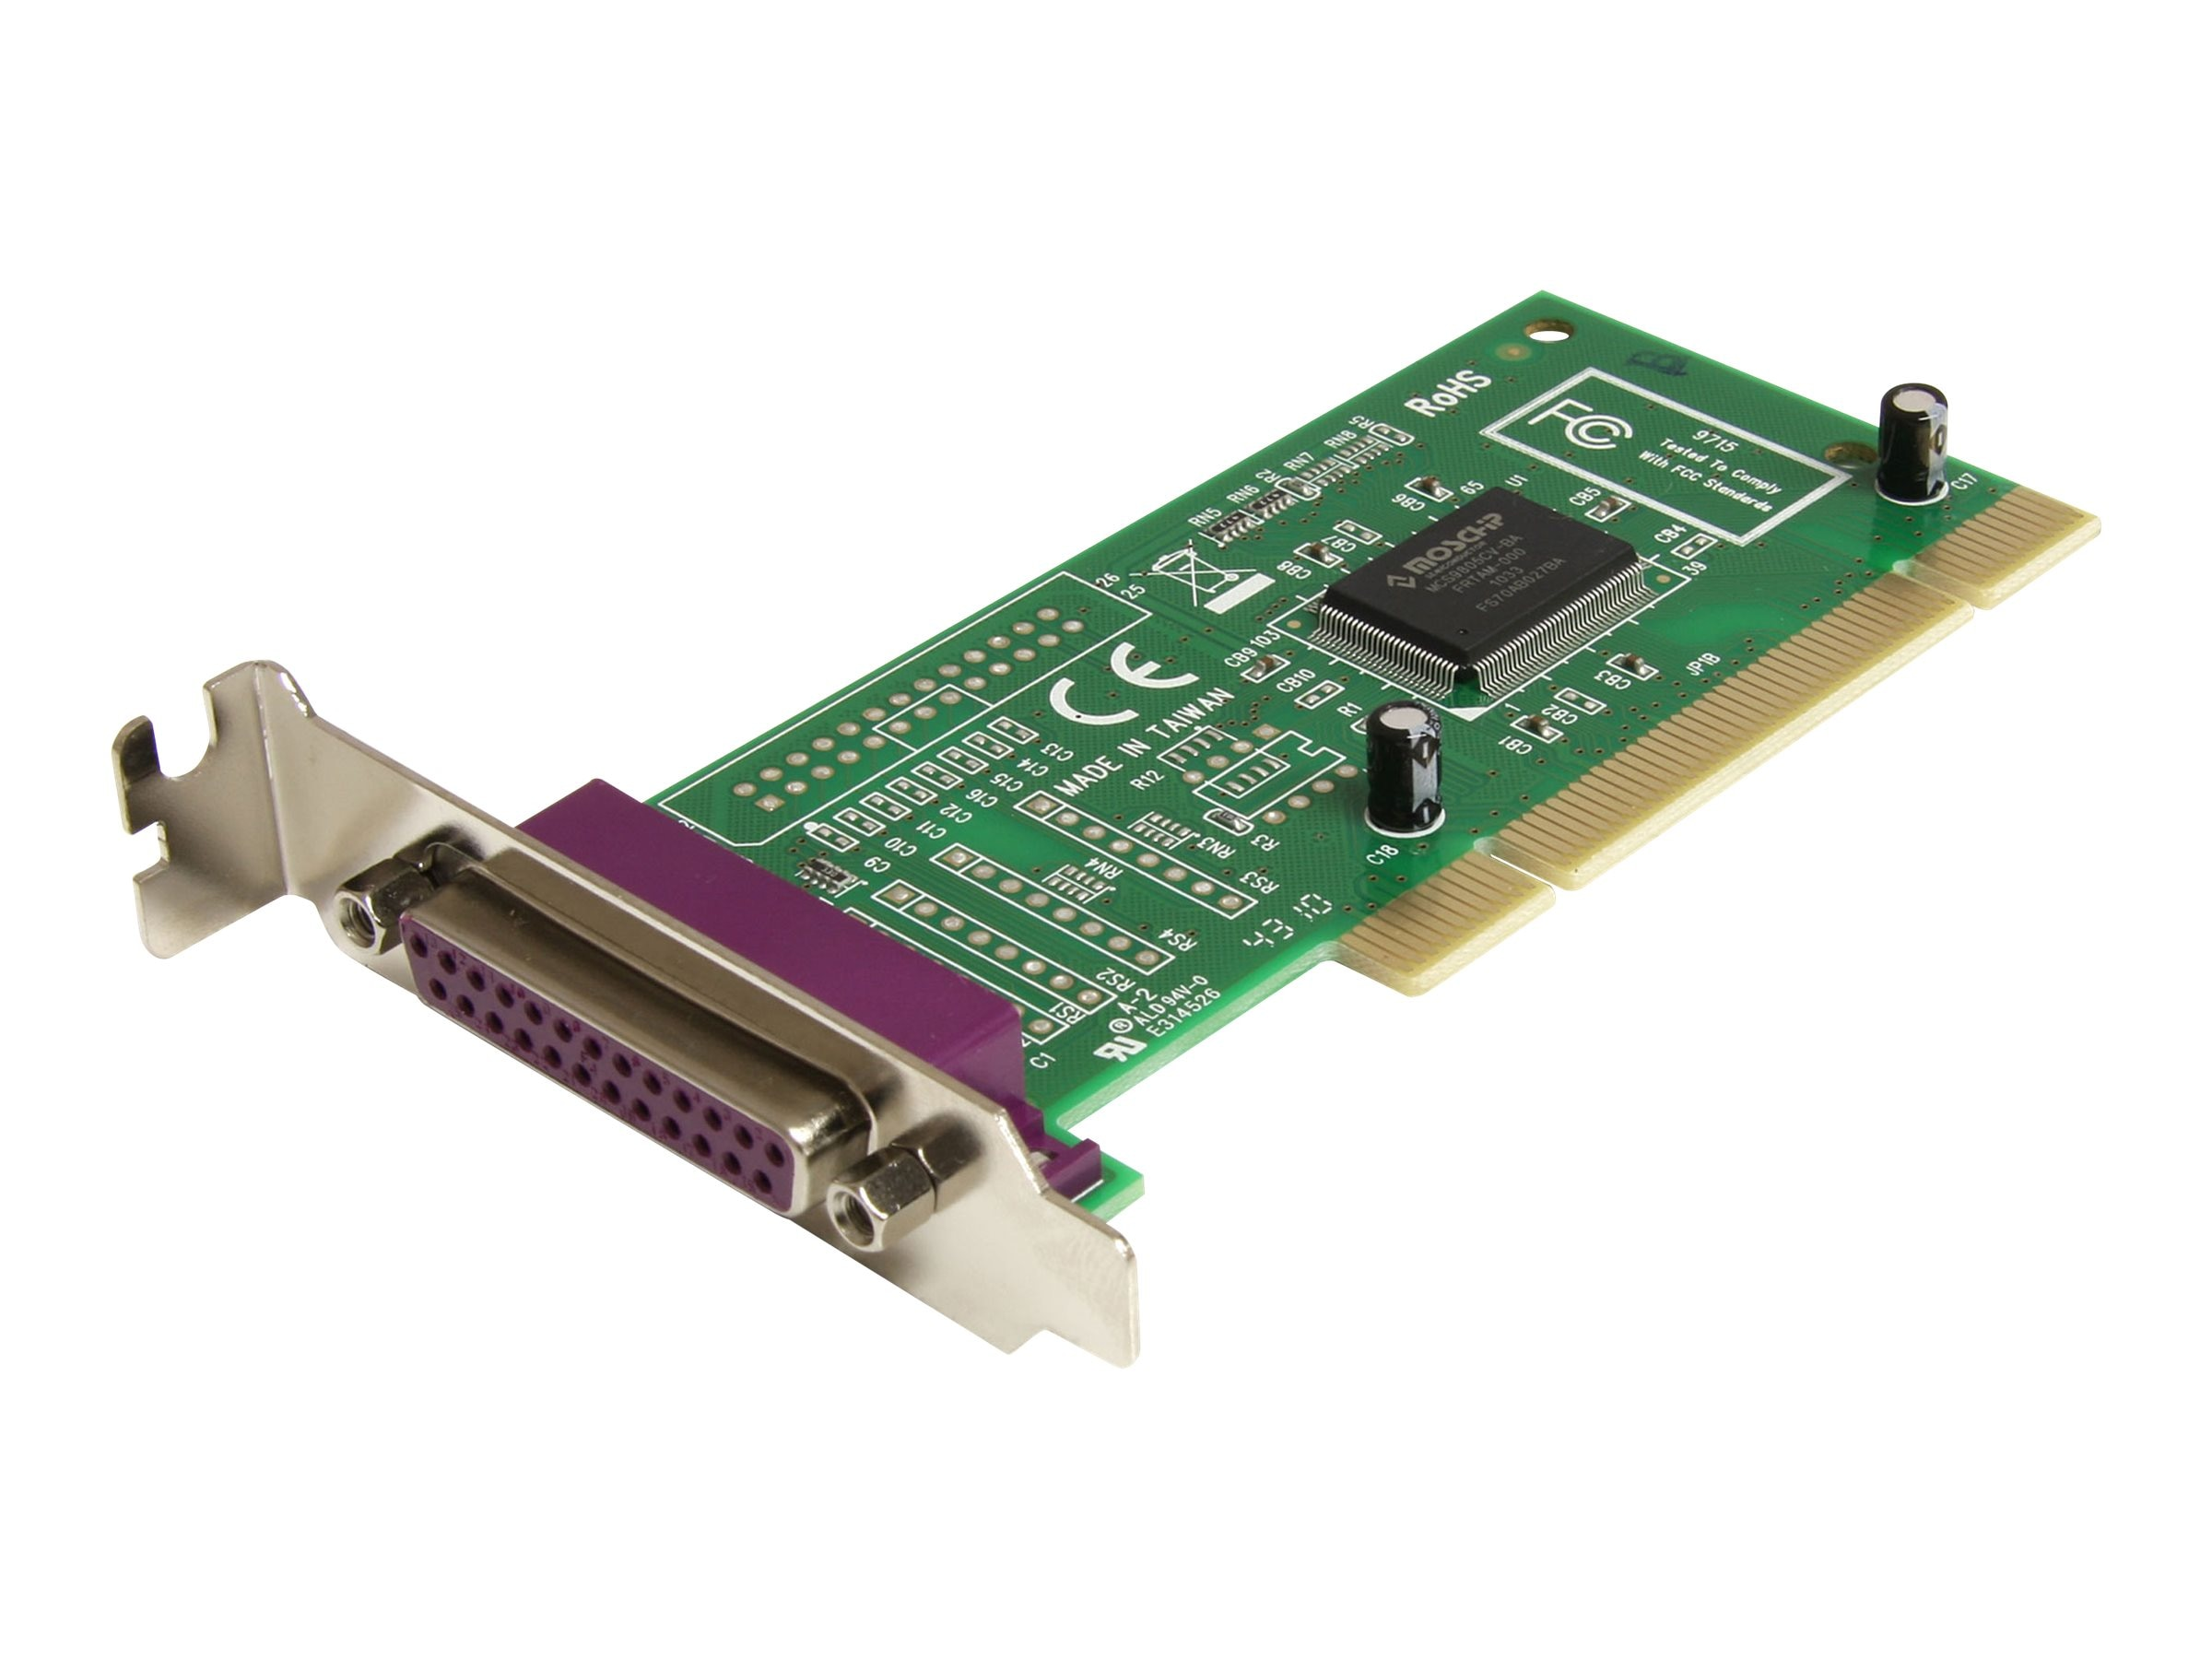 StarTech.com 1-Port Low Profile Parallel PCI Card Adapter IEEE 1284, Plug & Play